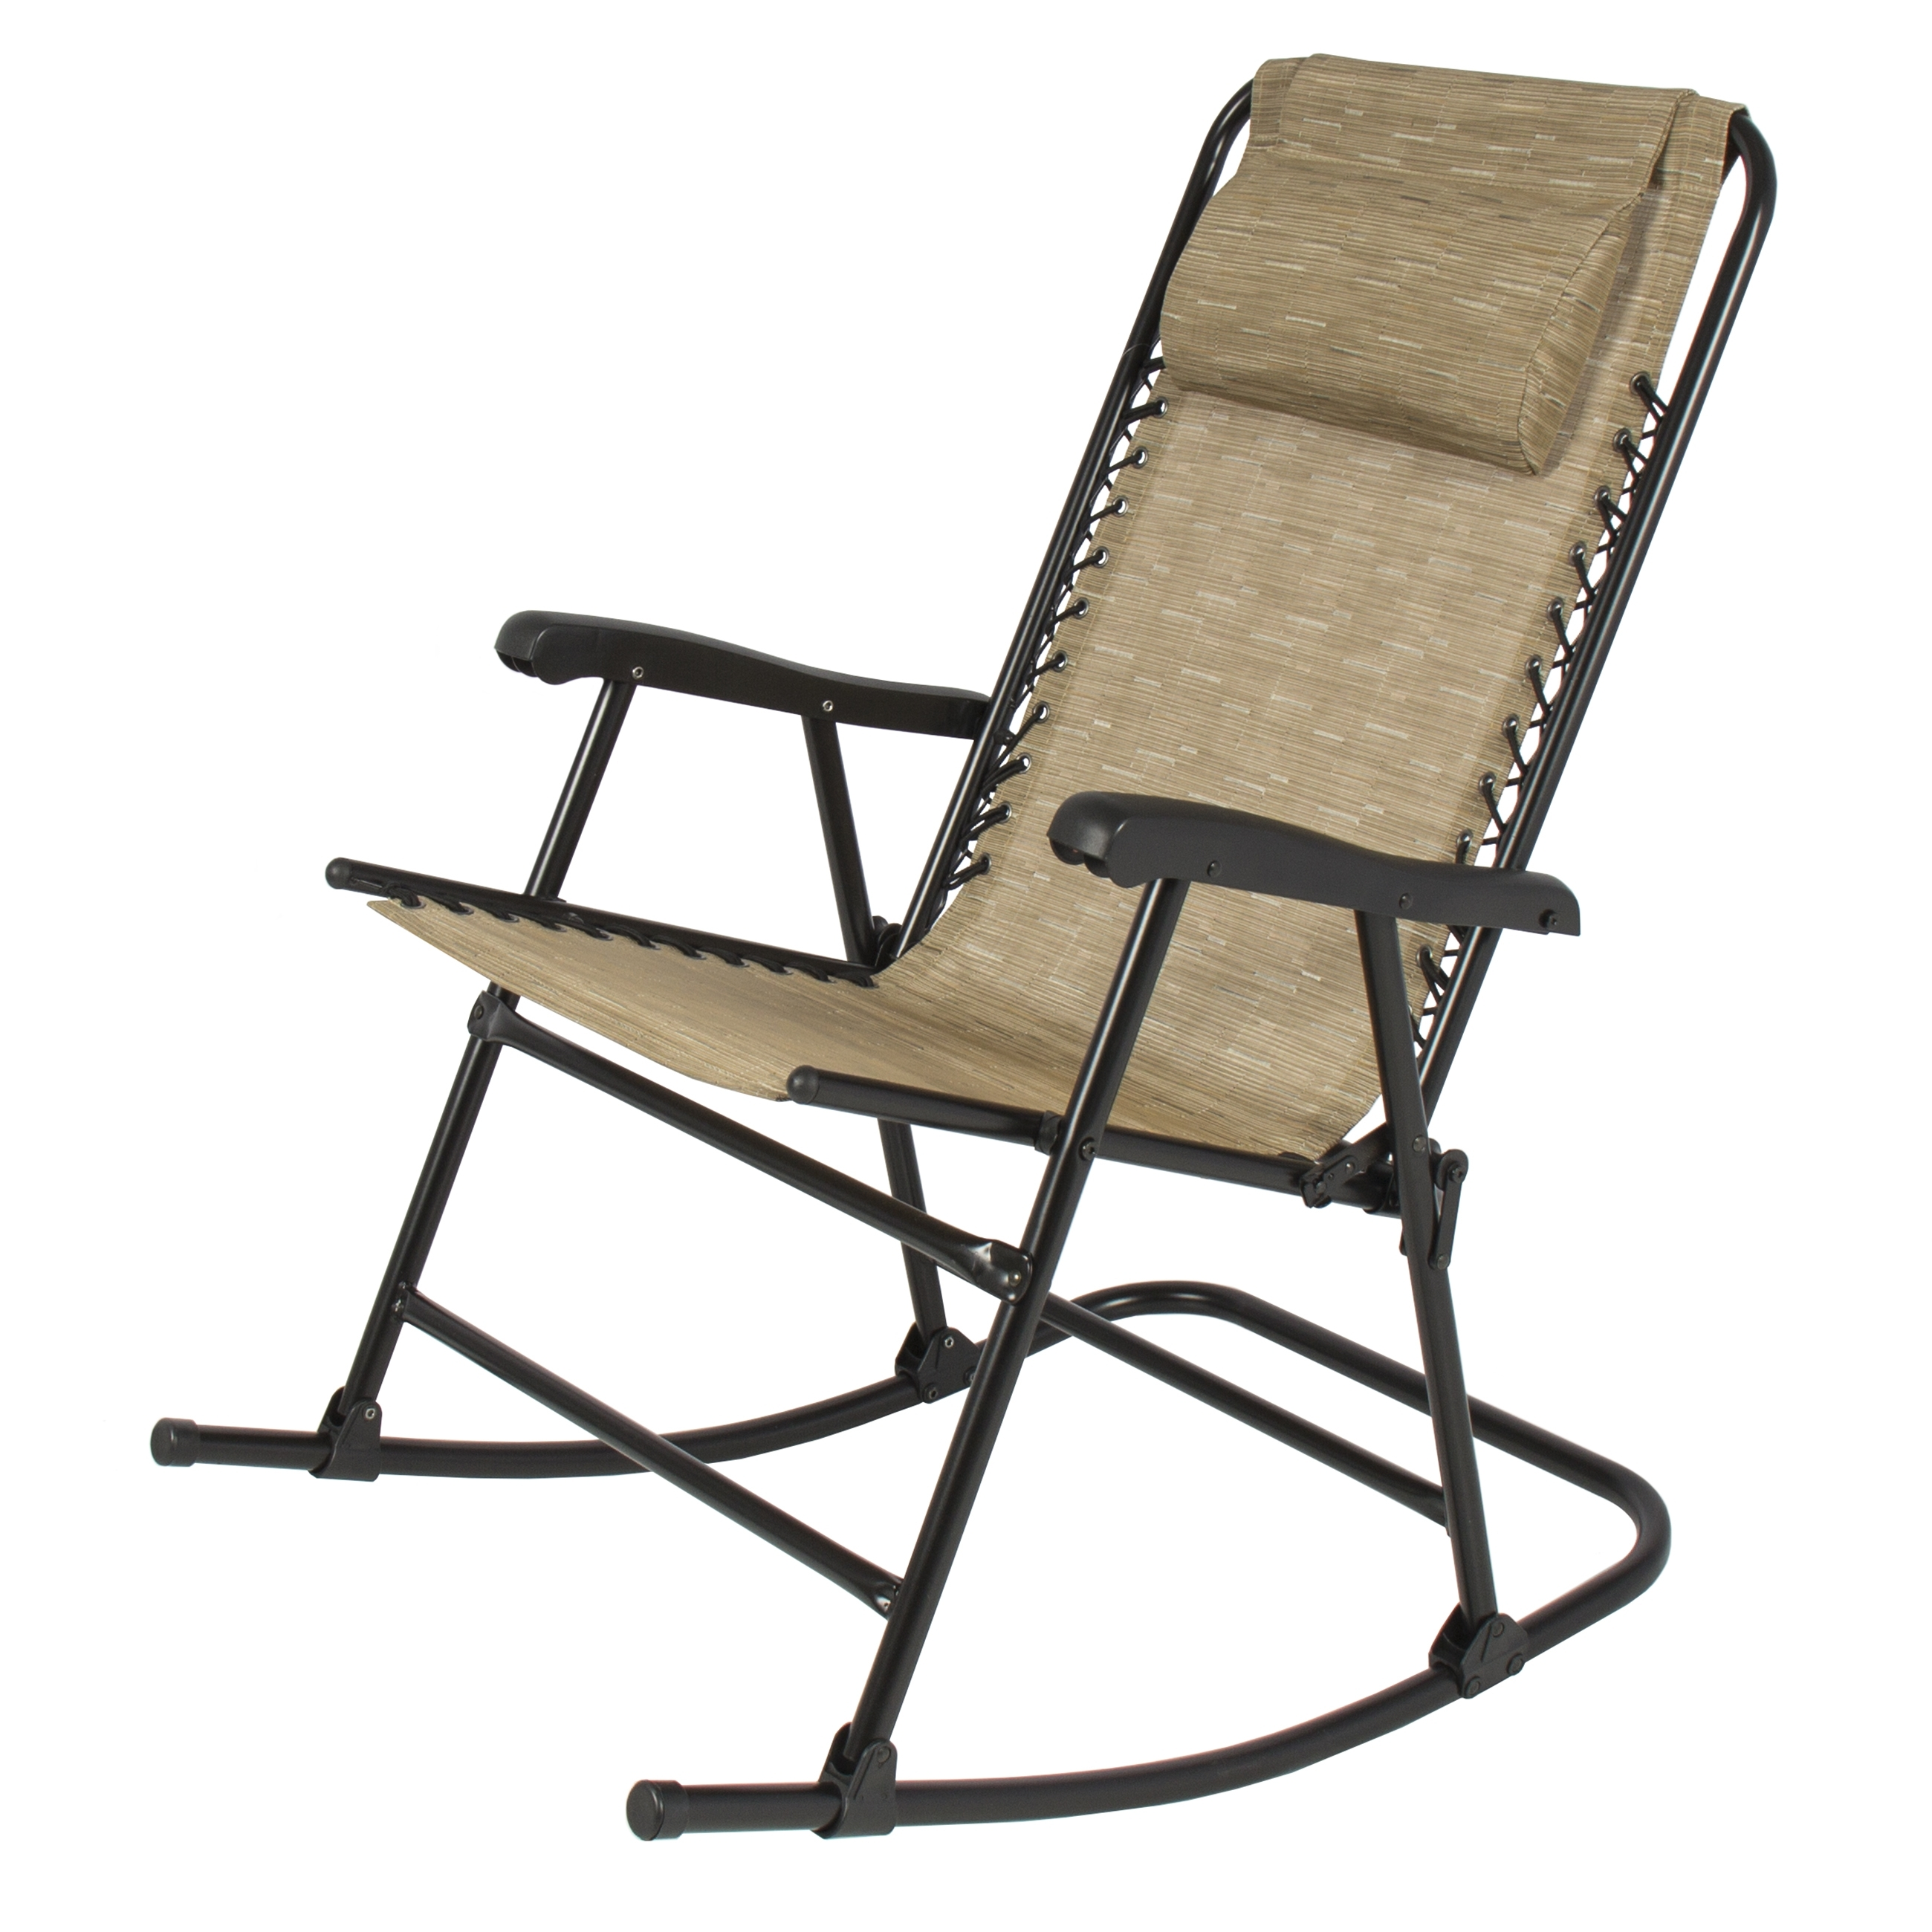 Latest Folding Rocking Chair Foldable Rocker Outdoor Patio Furniture Beige Regarding Walmart Rocking Chairs (View 4 of 15)